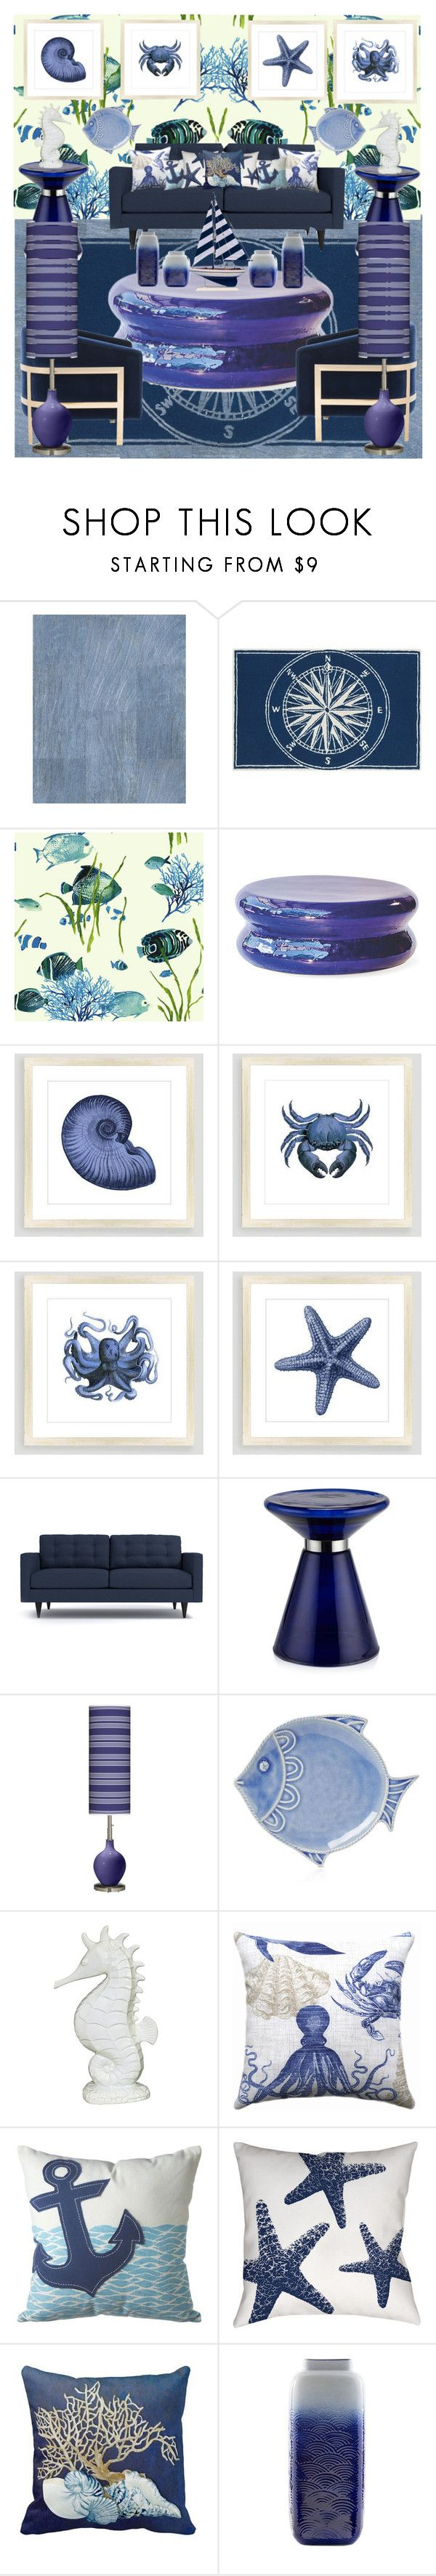 """""""Nautical decor"""" by gothbear13 ❤ liked on Polyvore featuring interior, interiors, interior design, home, home decor, interior decorating, Seasonal Living, Safavieh, Cost Plus World Market and Juliska"""